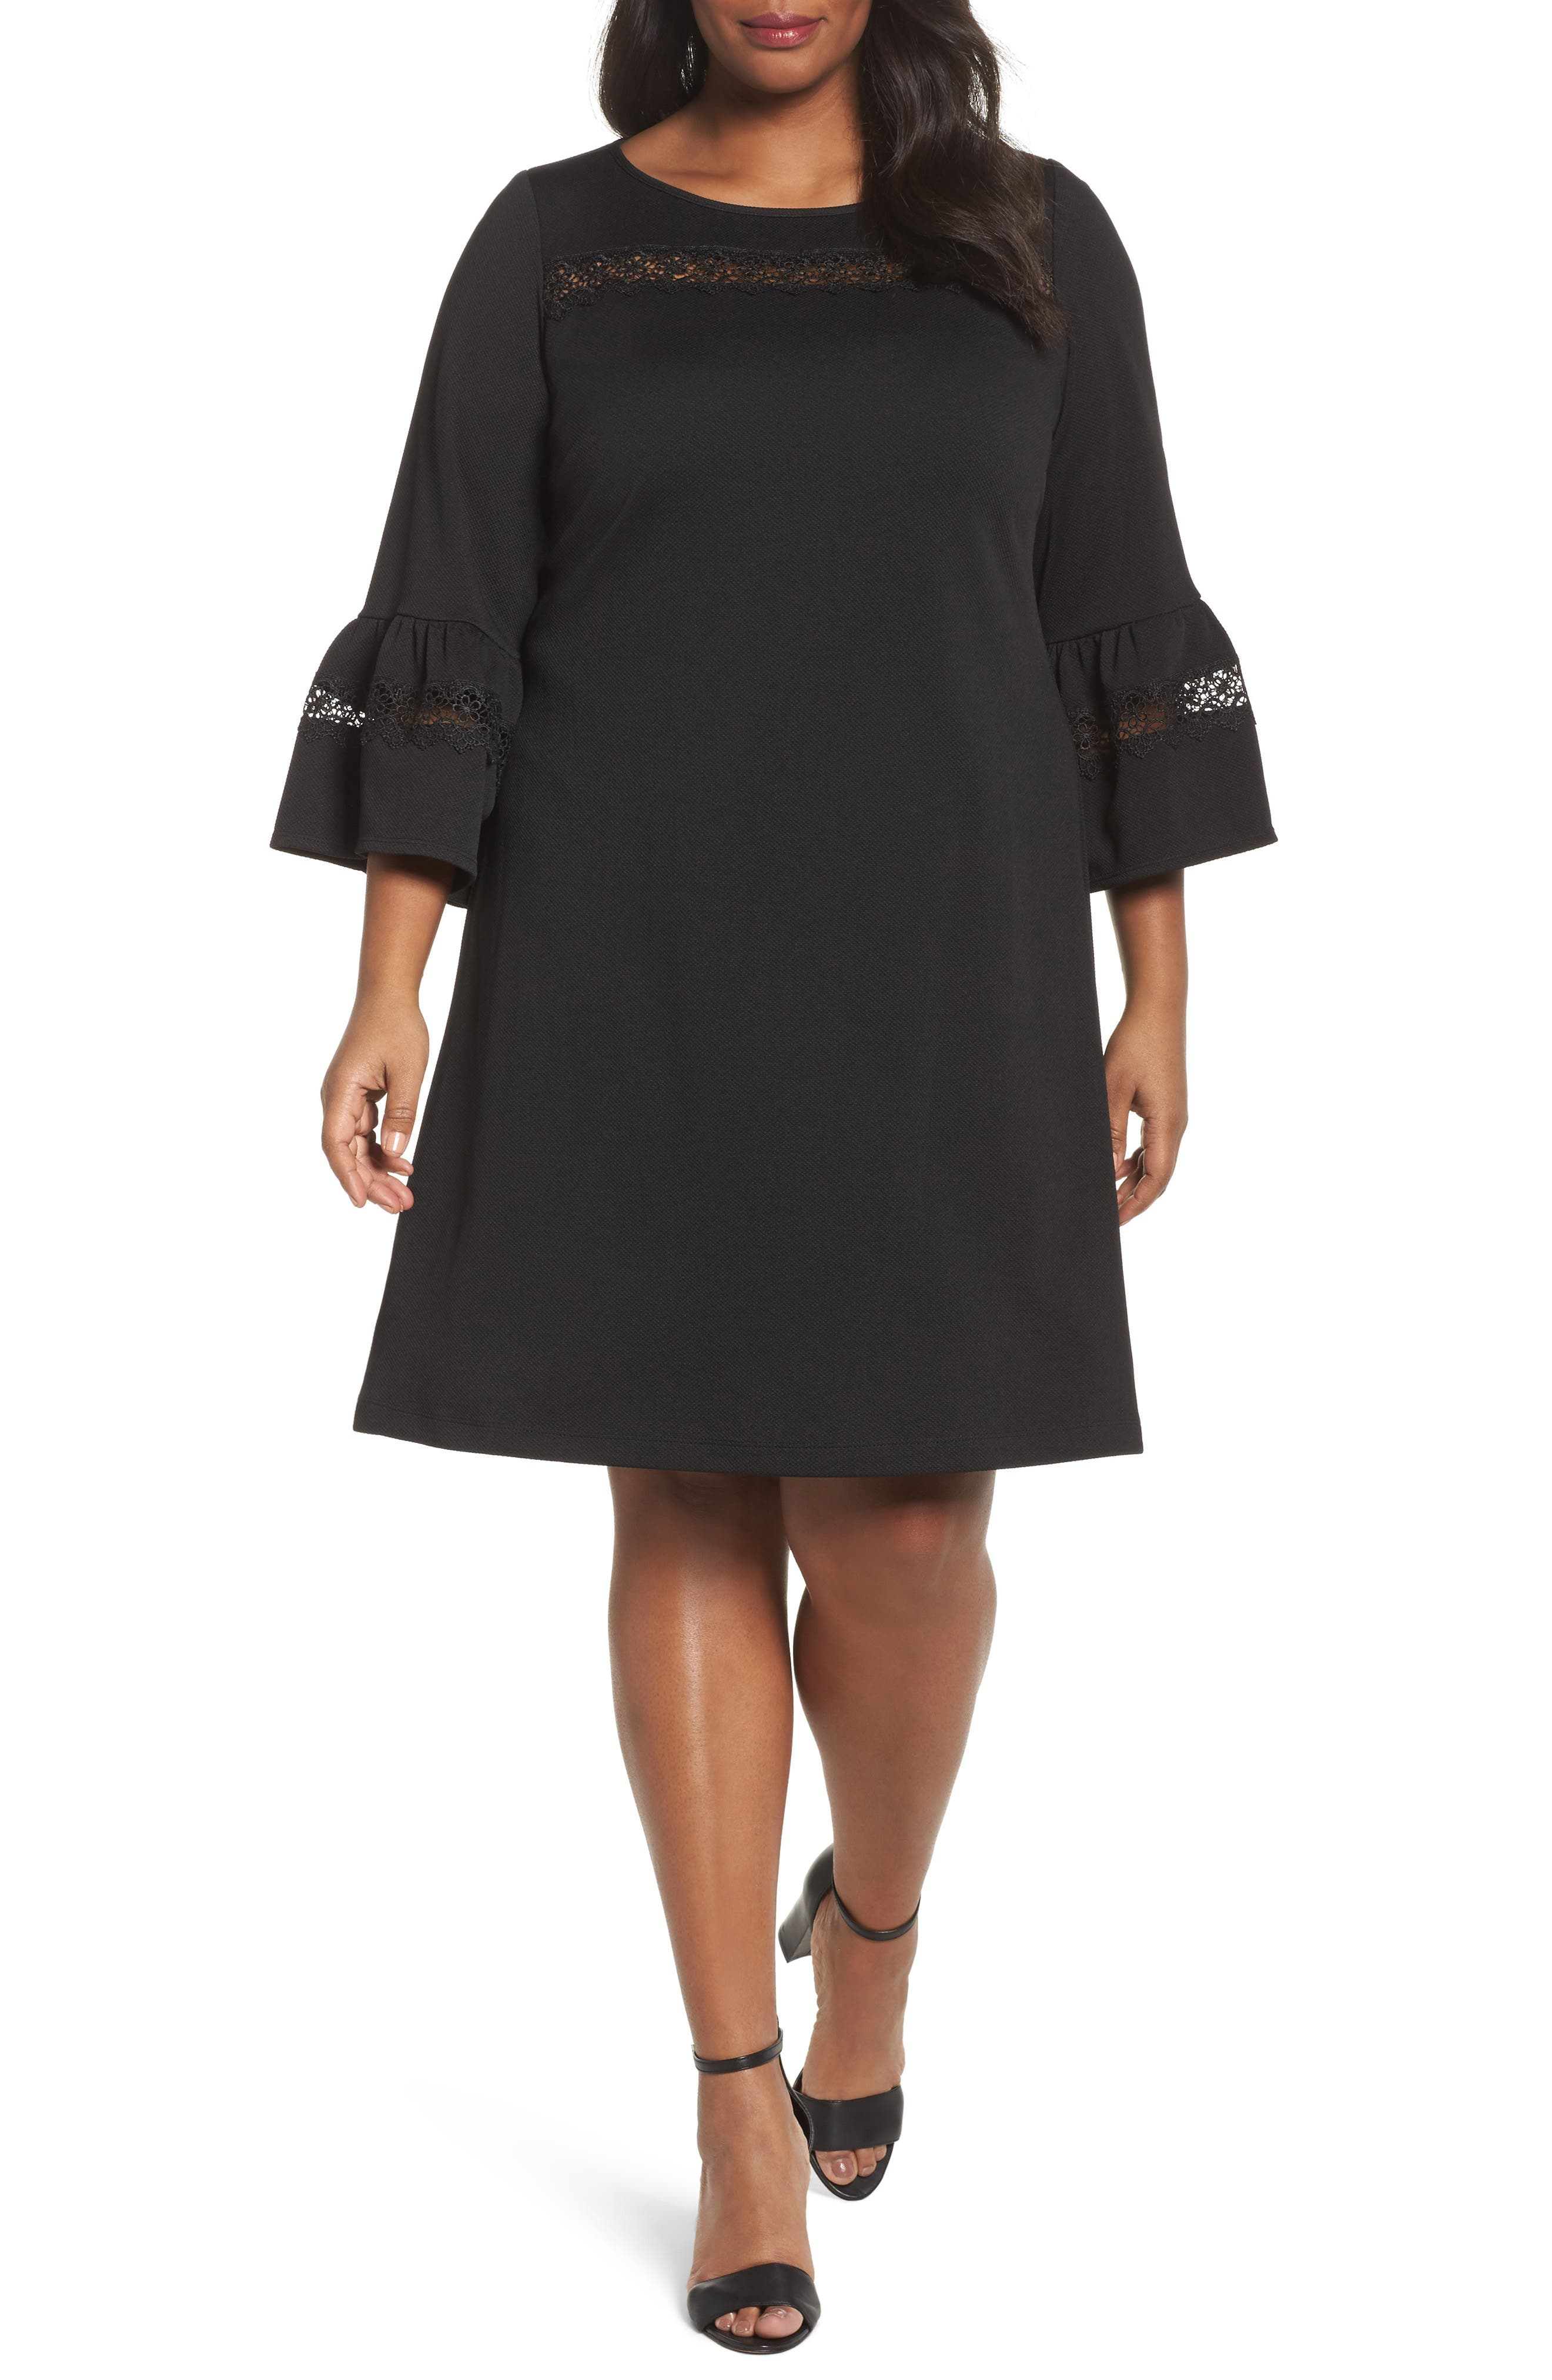 Alternate Image 1 Selected - Gabby Skye Bell Sleeve Dress (Plus Size)